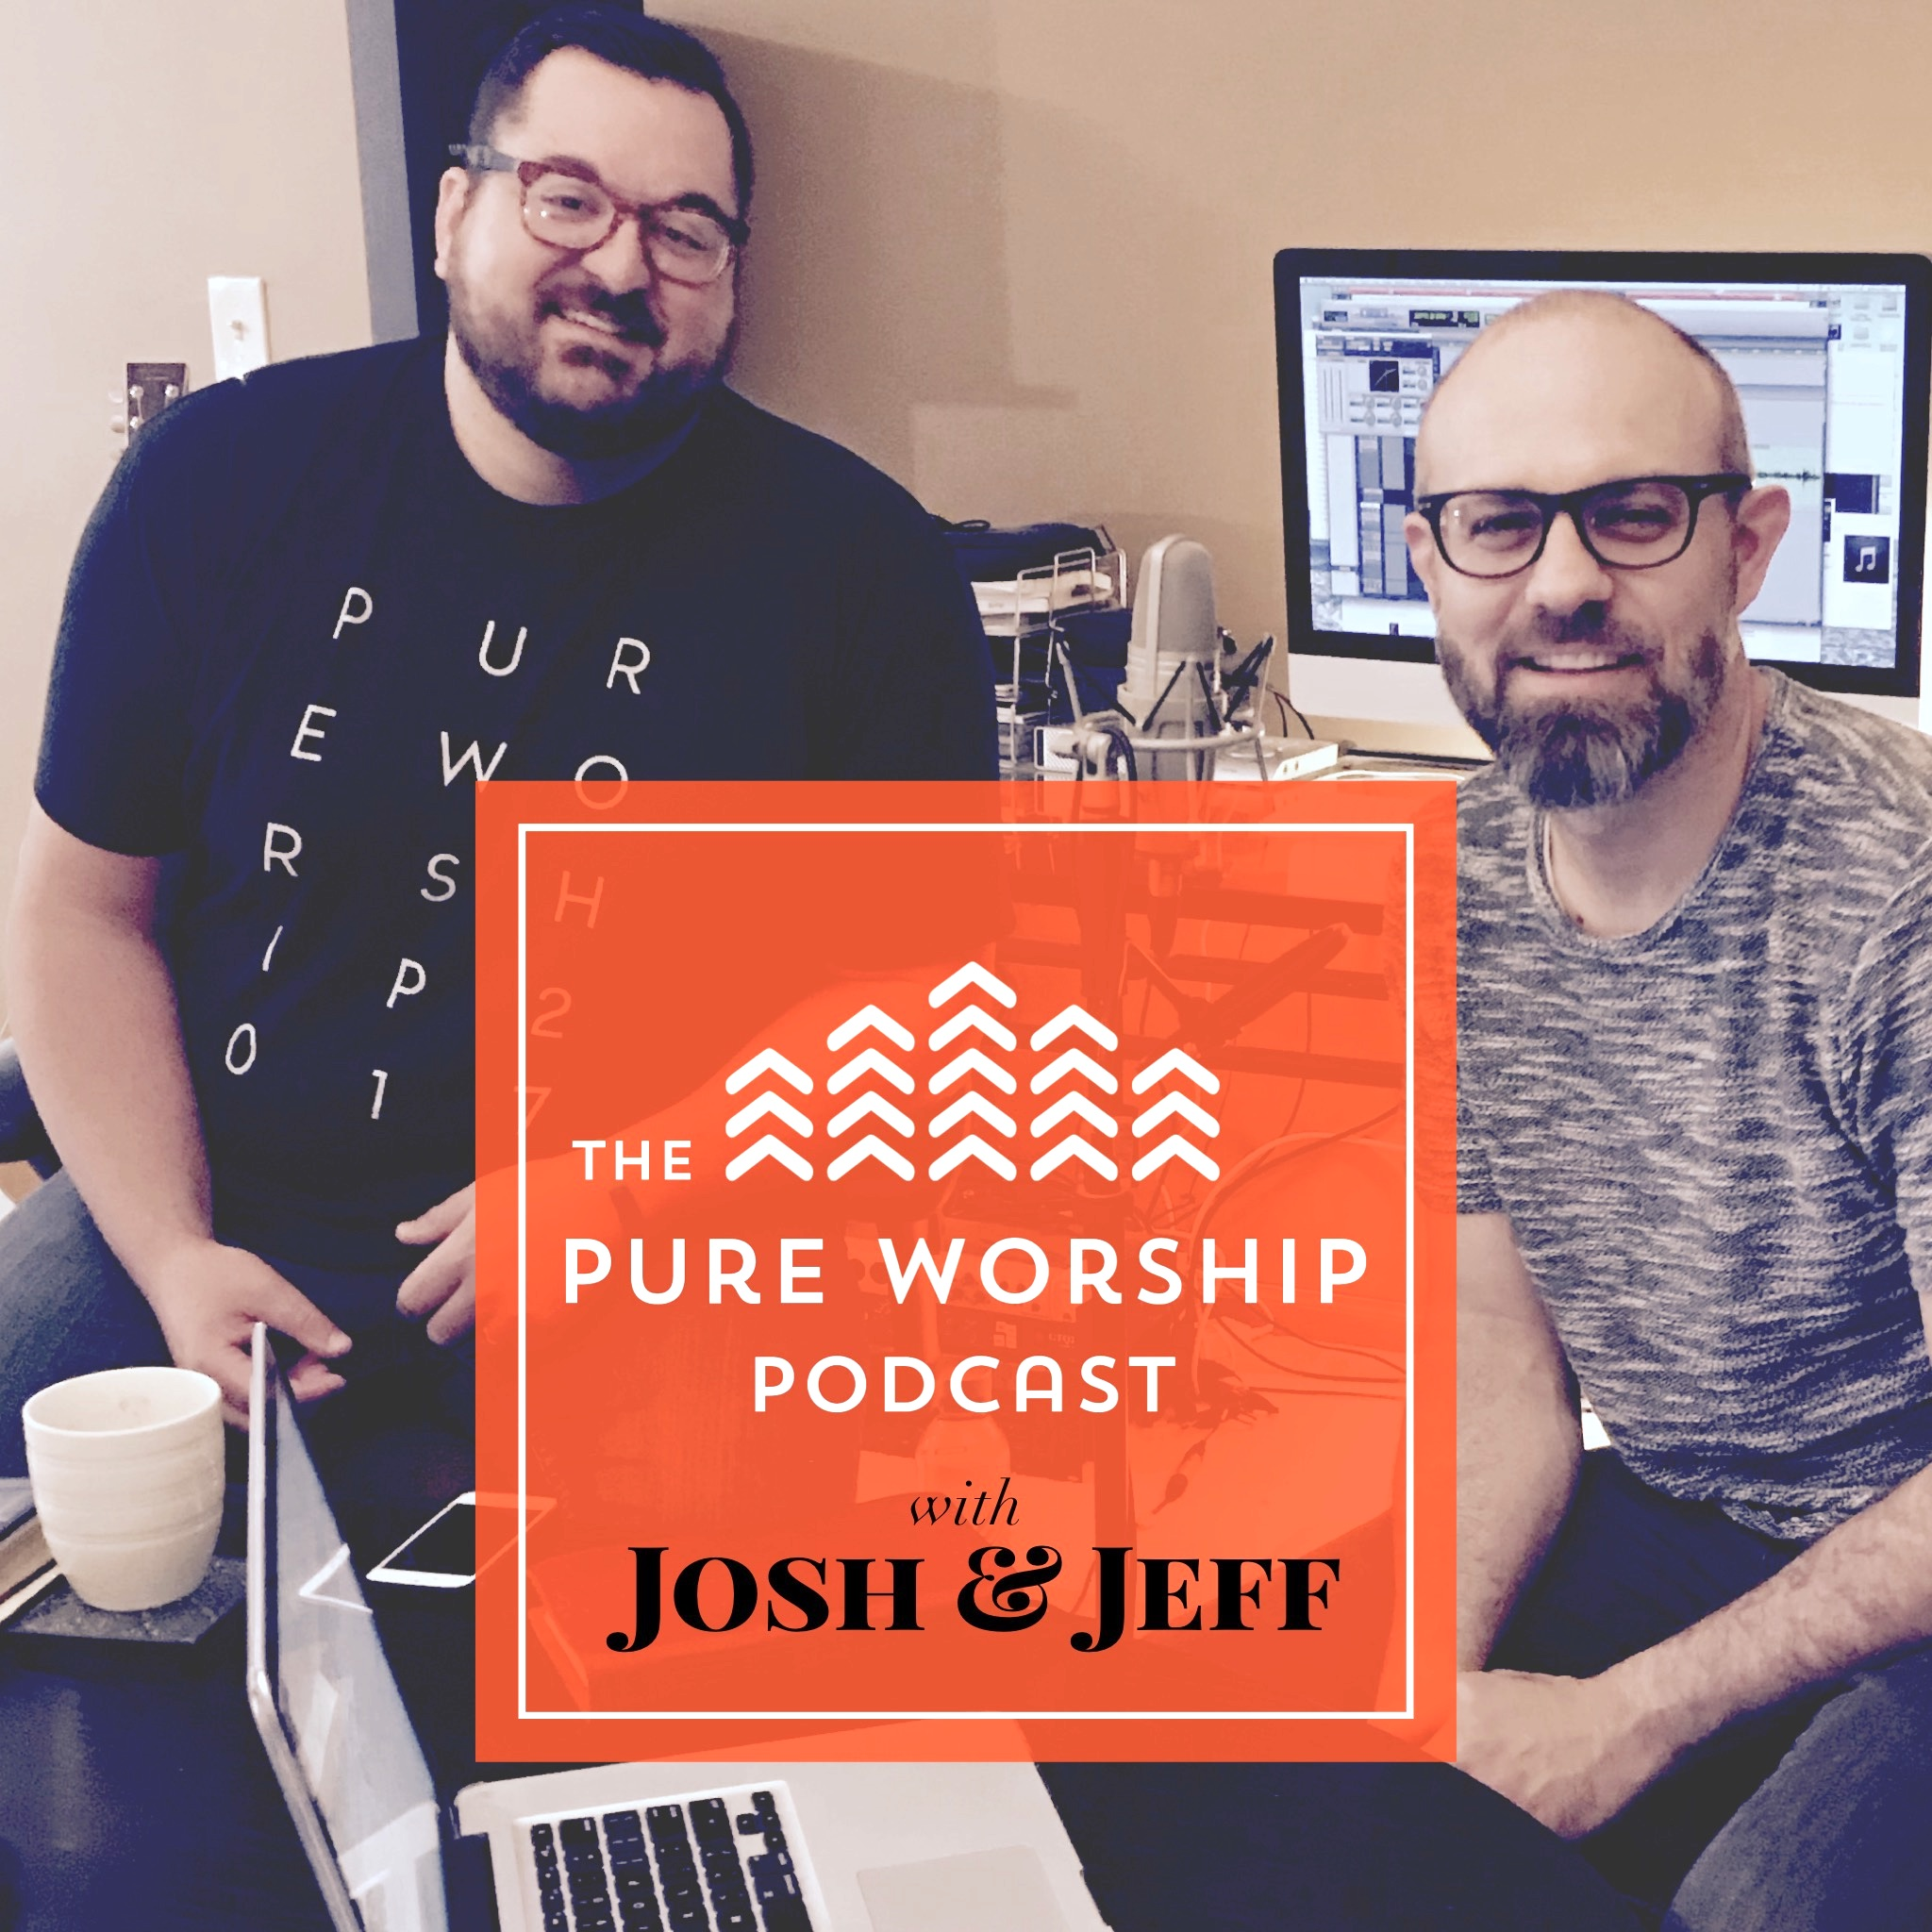 The Pure Worship Podcast